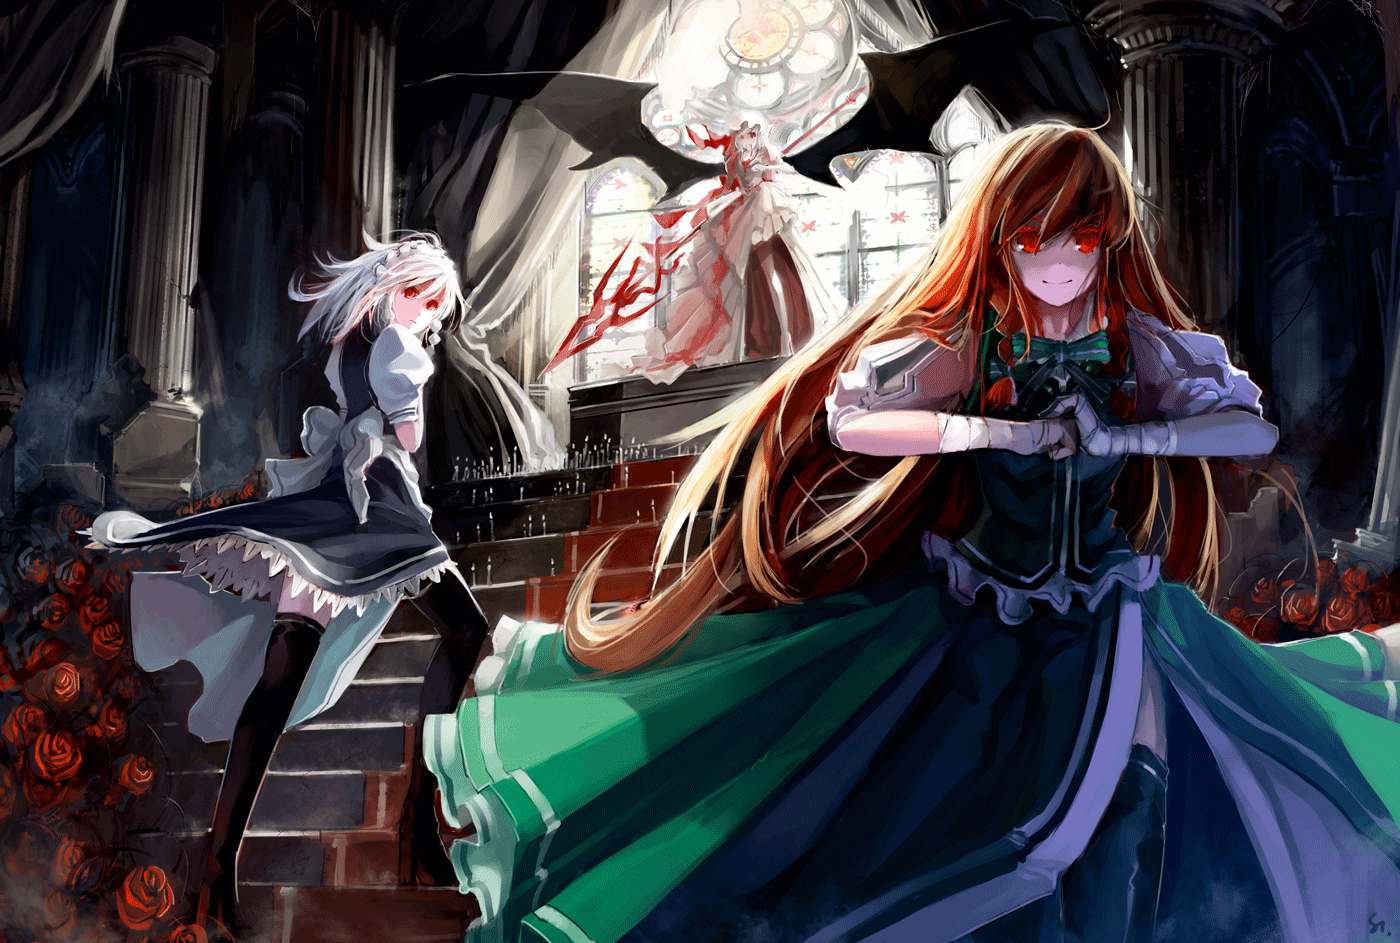 Cute Anime Characters Wallpapers Touhou Wallpaper Pack 08 04 2012